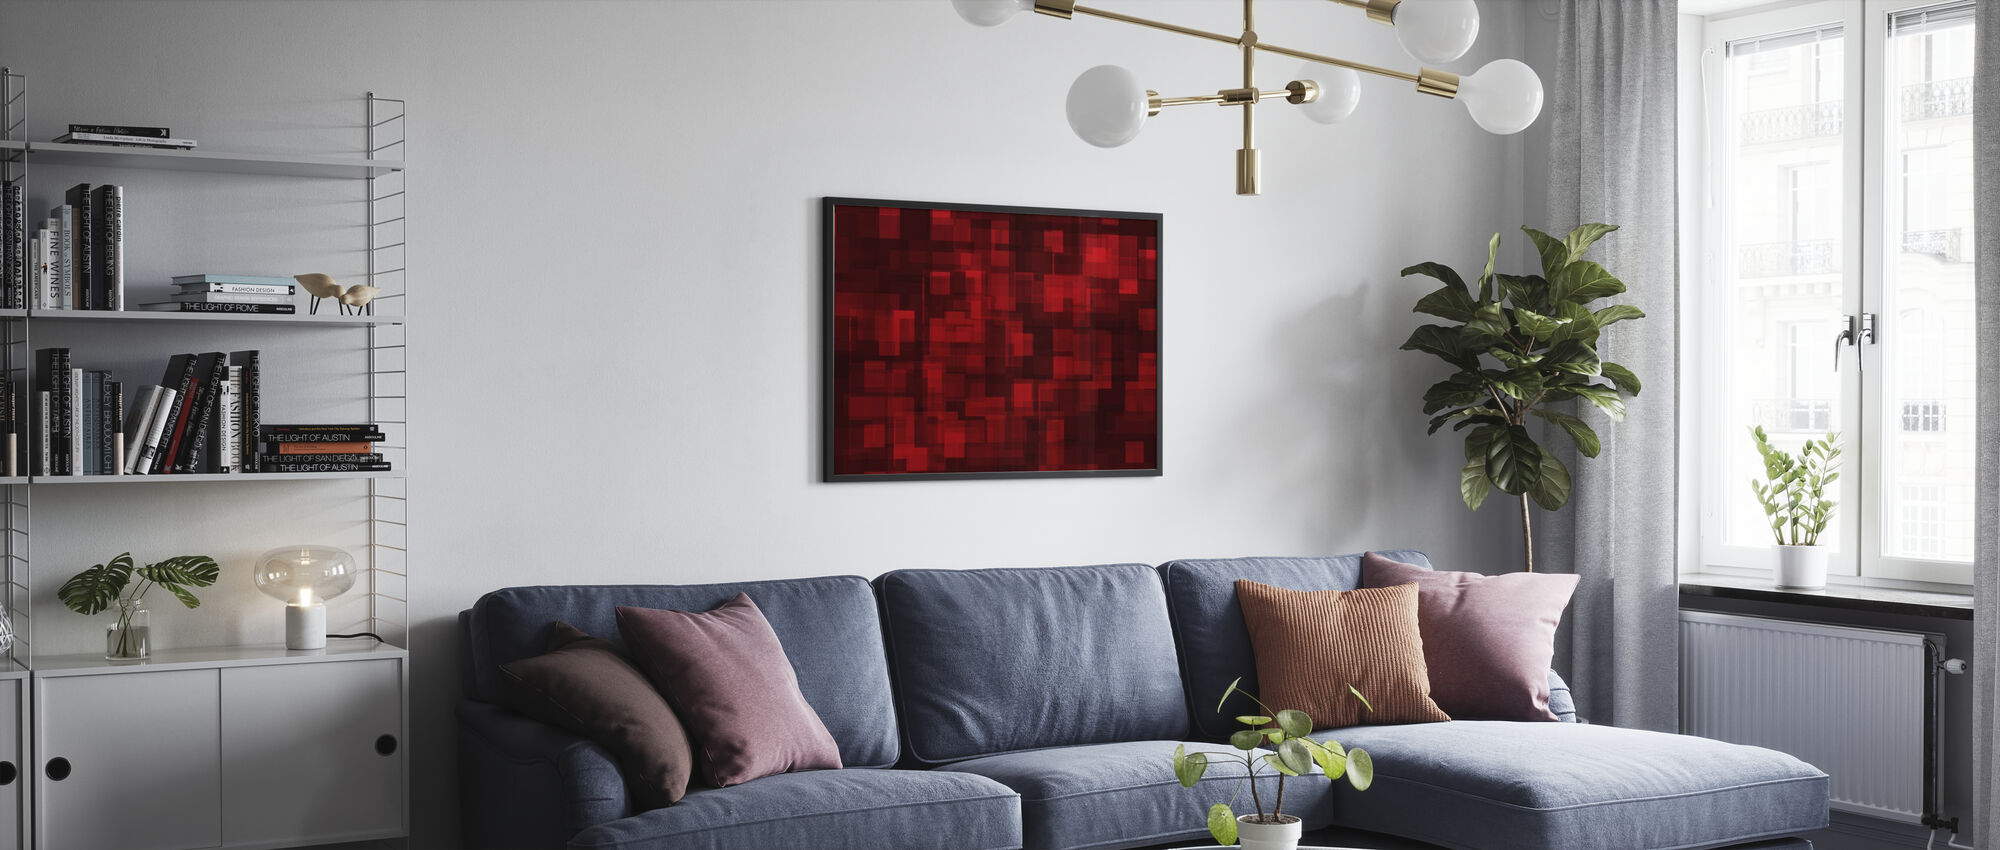 Chaotic Red - Poster - Living Room